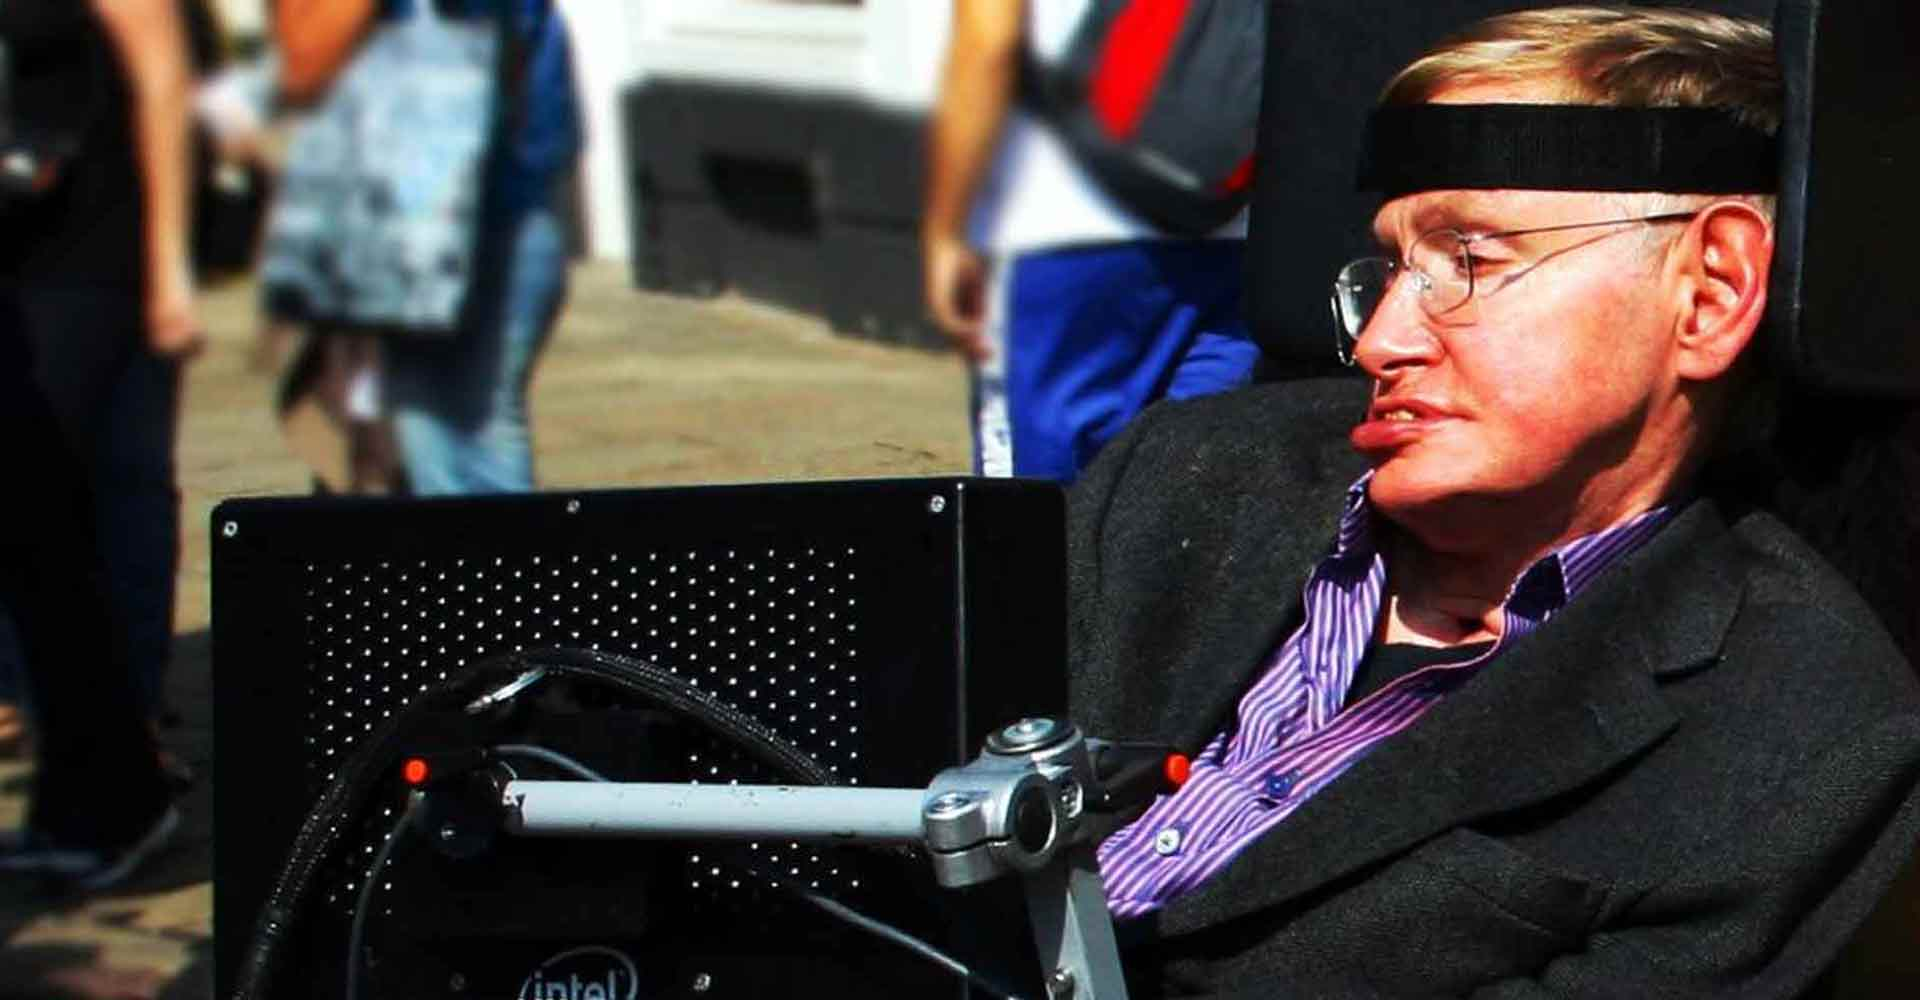 Stephen Hawking in Cambridge, the gravity god